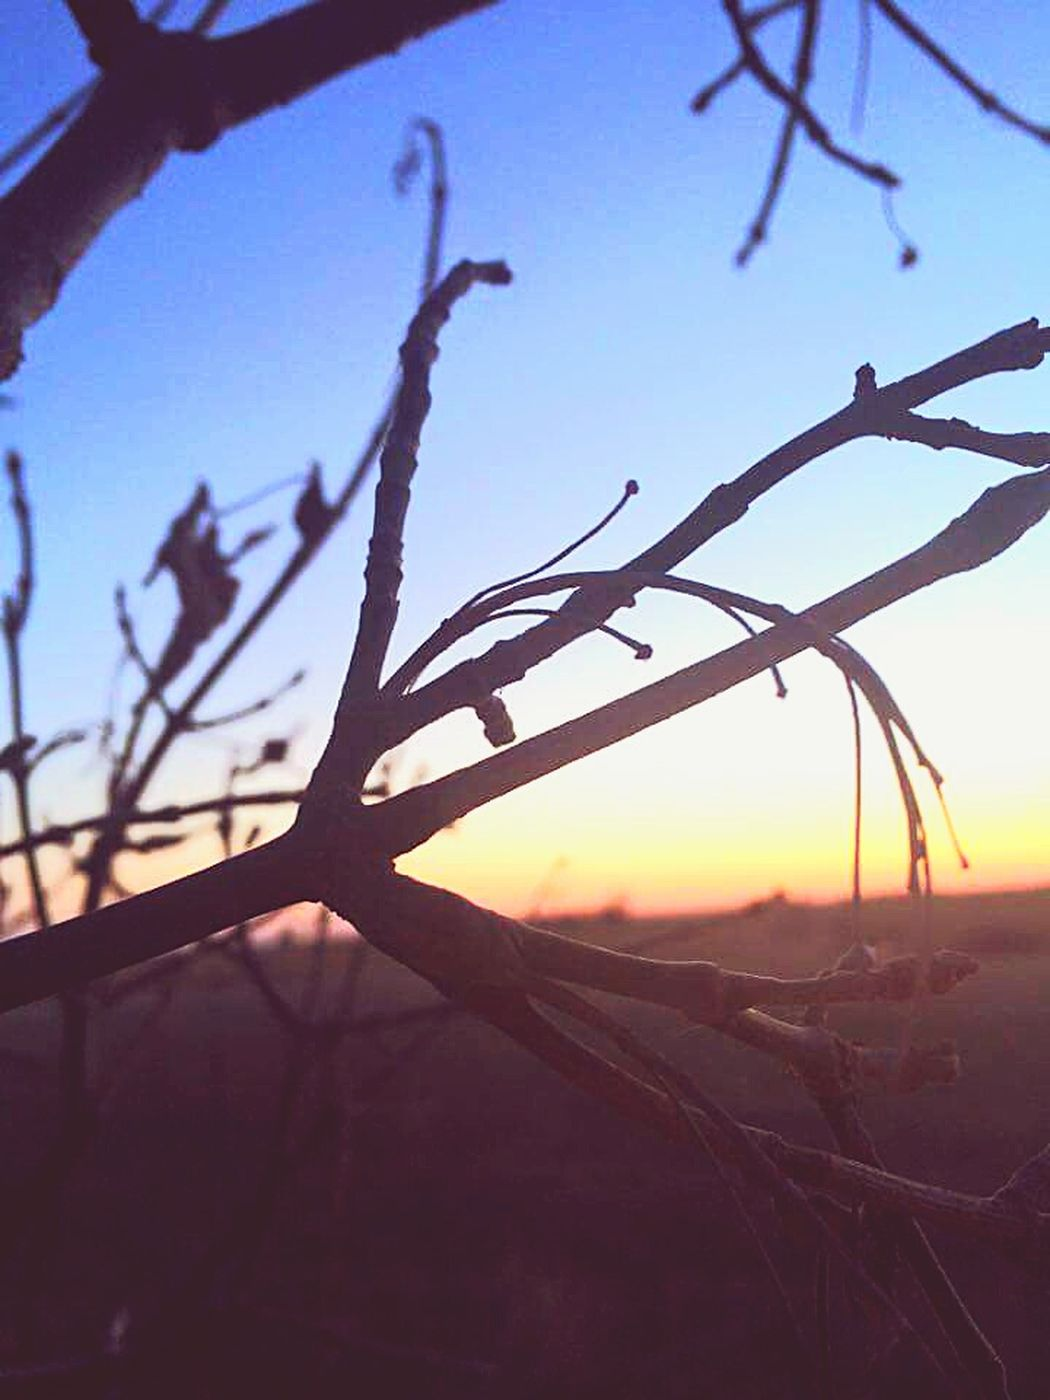 Prairie_collection Nature_collection EyeEm Nature Lover Prairie Scenes Taking Photos Tree_collection